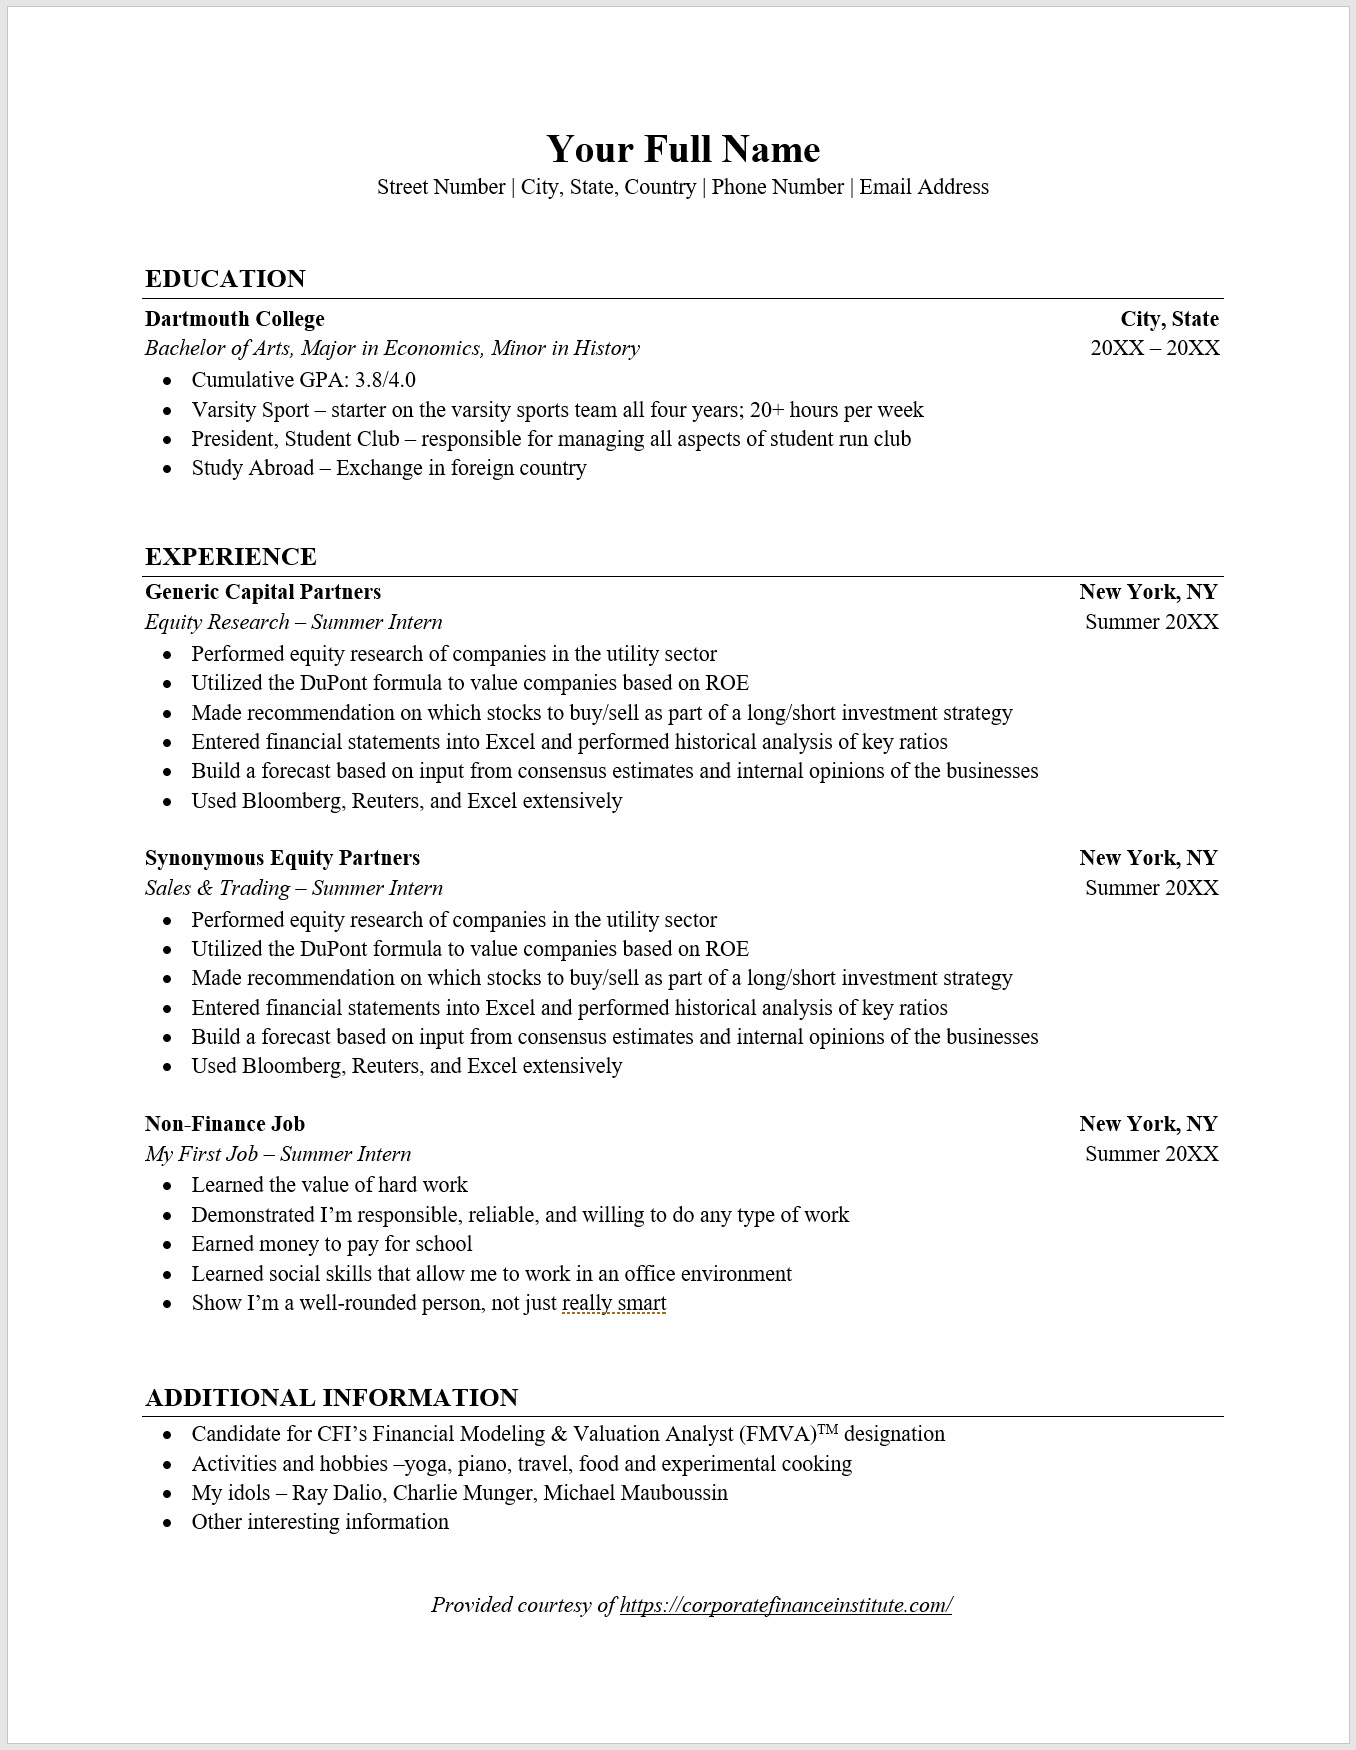 Best Font For Resume Examples List Of The 5 Best Resume Fonts